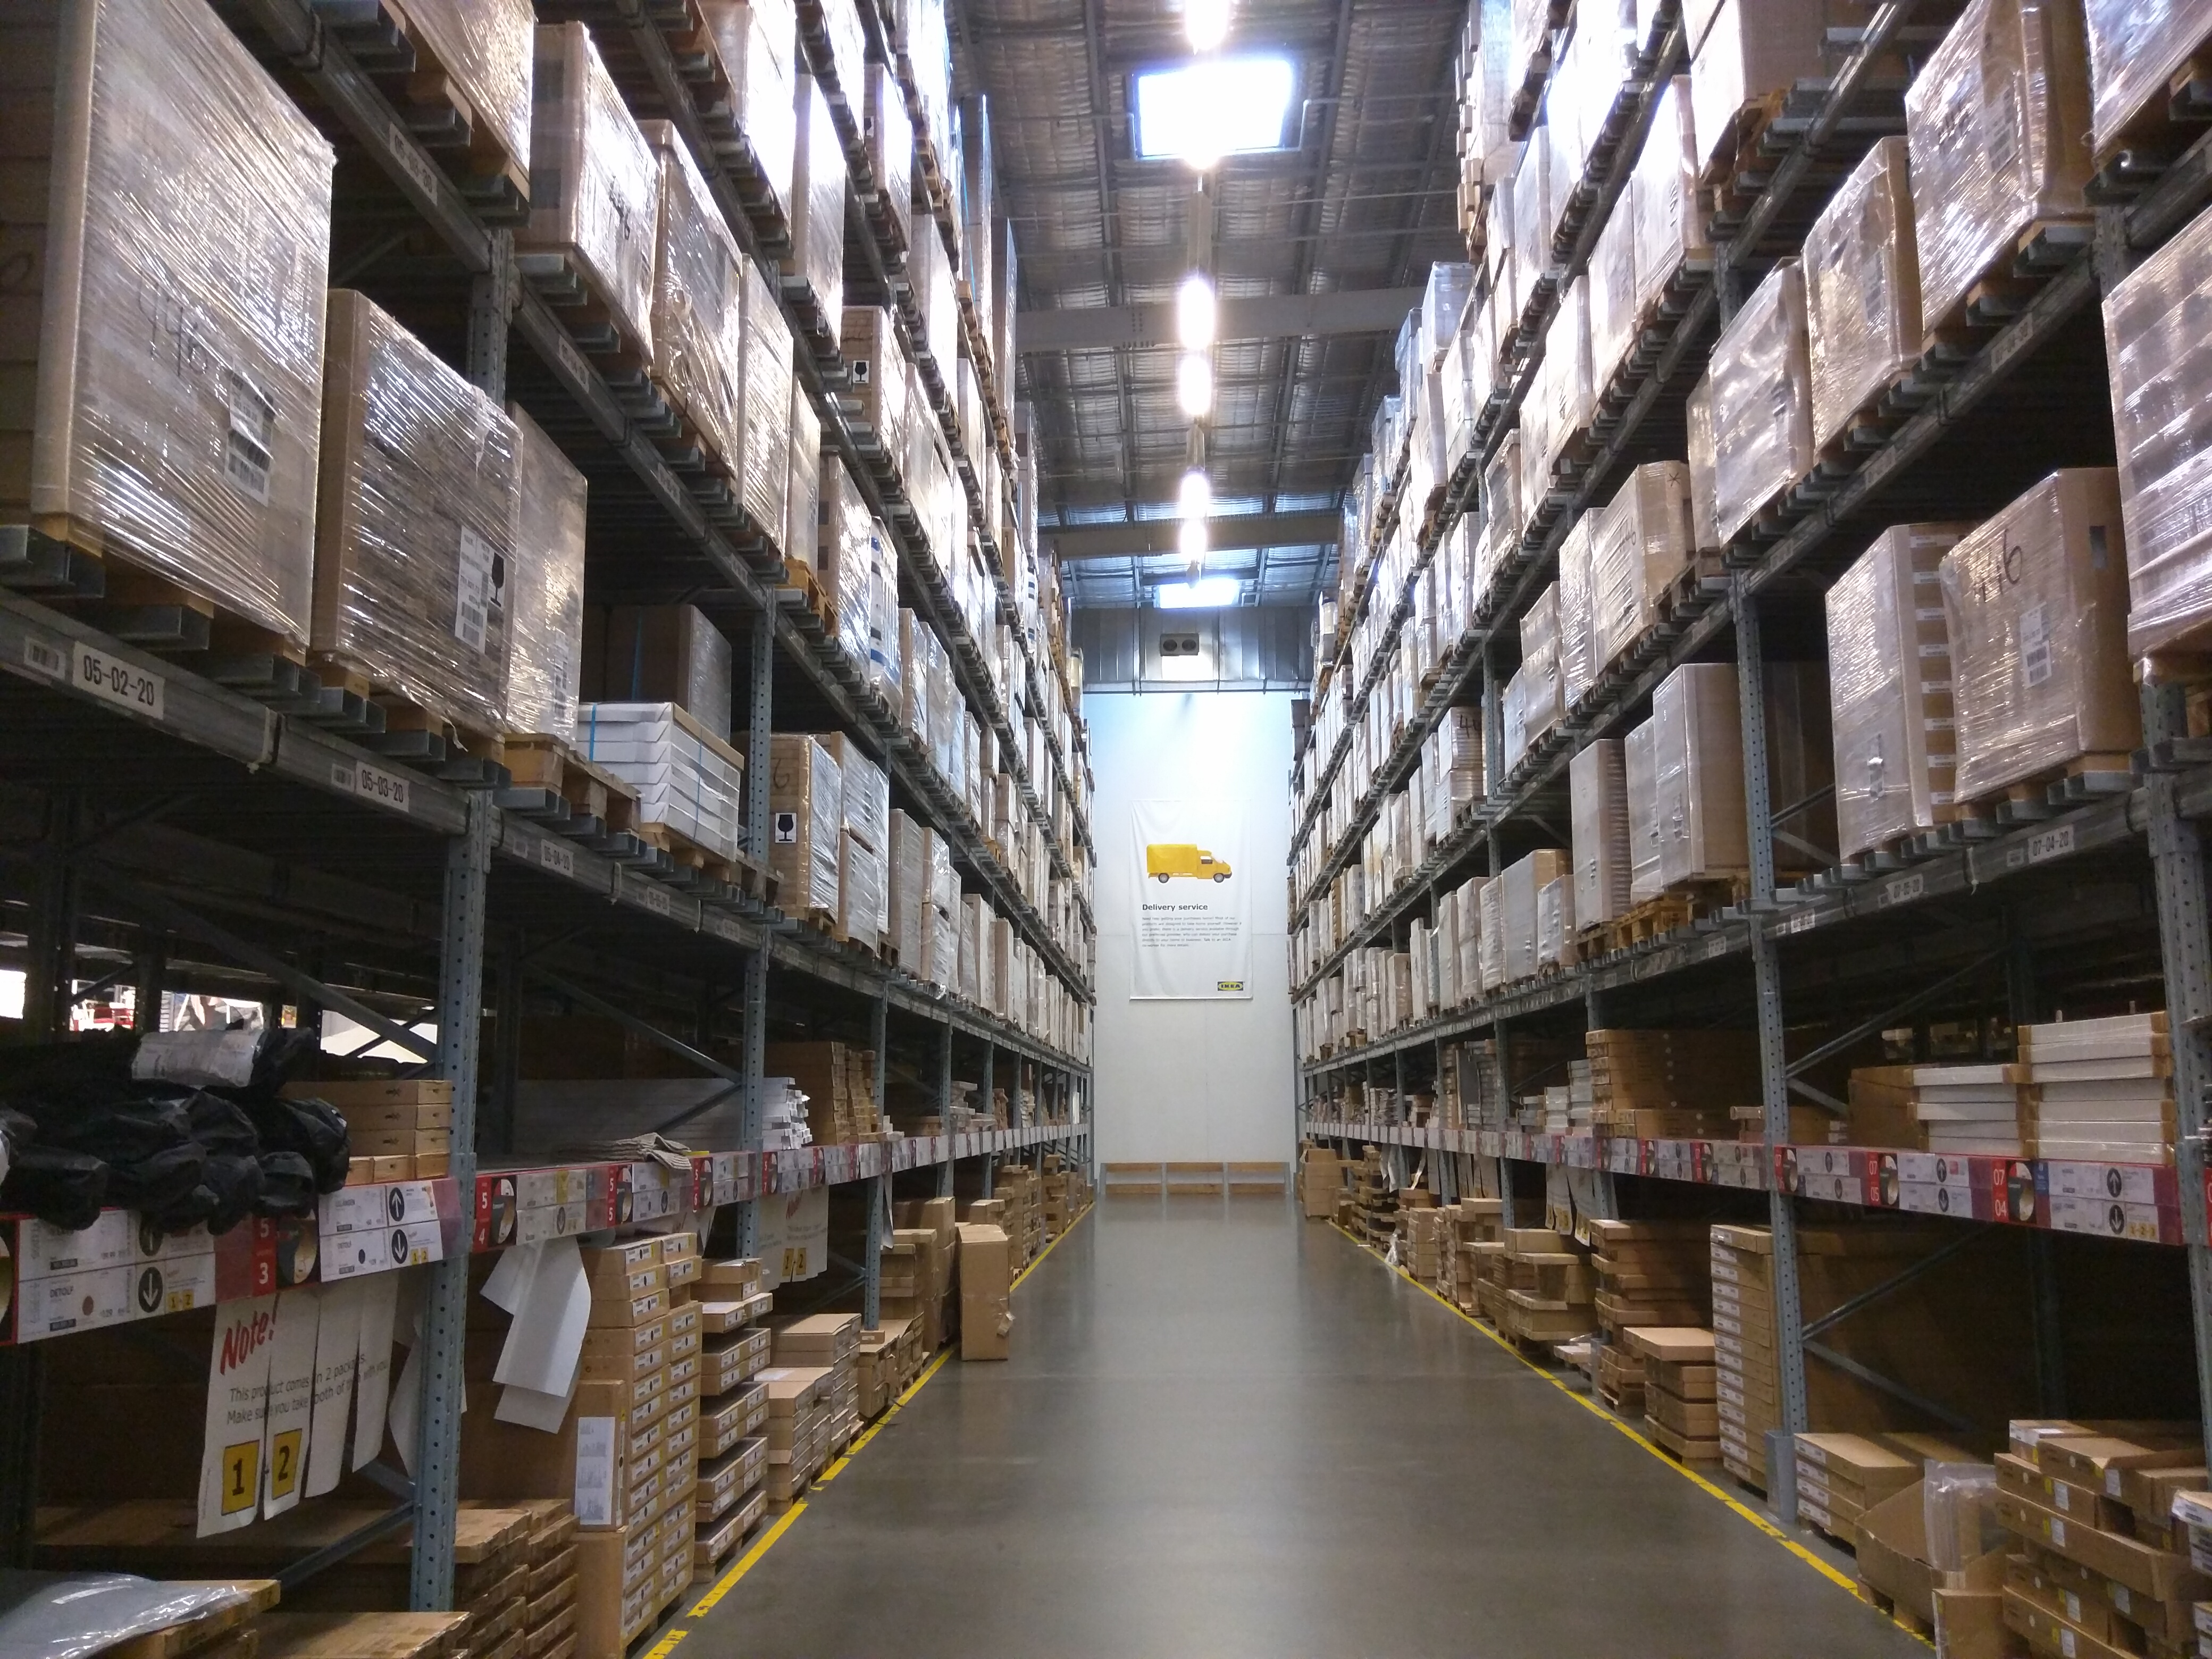 Automation in warehouses may produce higher ROI | Supply